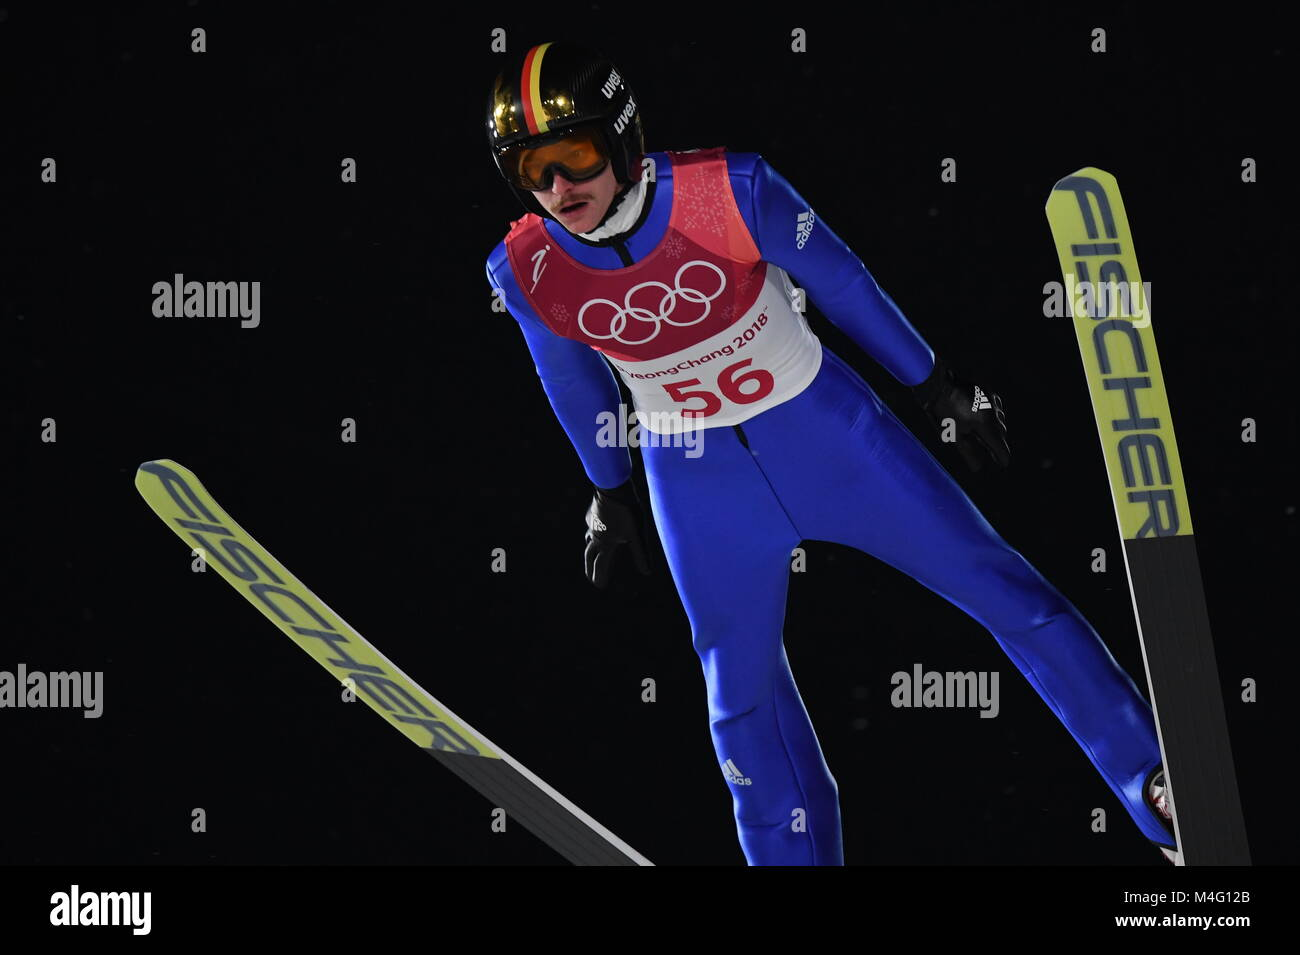 Pyeongchang, South Korea. 16th Feb, 2018. Richard Freitag from Germany during ski jumping training in the Alpensia - Stock Image